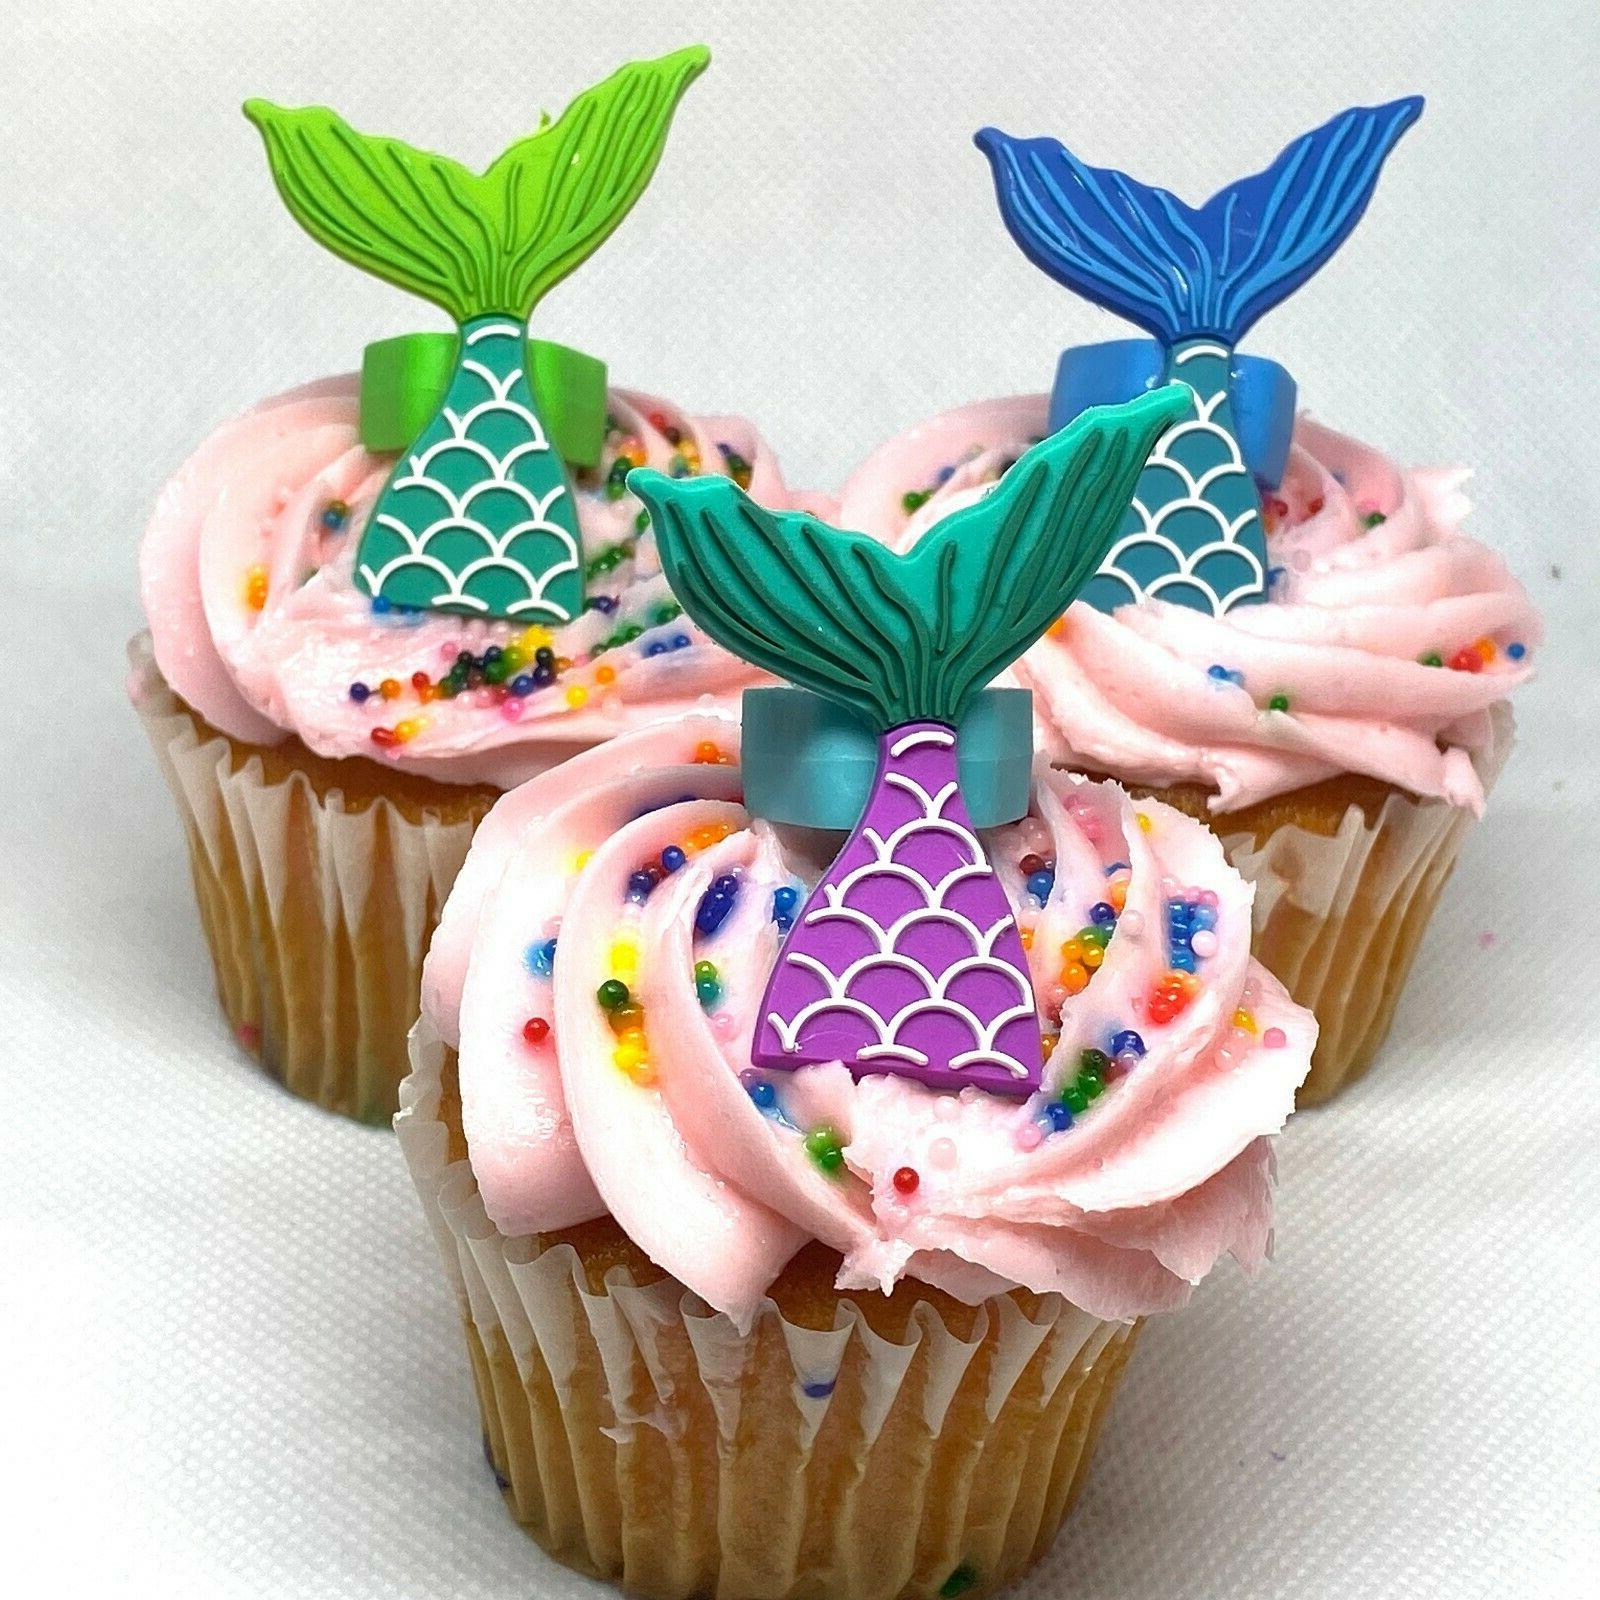 Mermaid Cupcake Cake Decorations Party Favors Set of